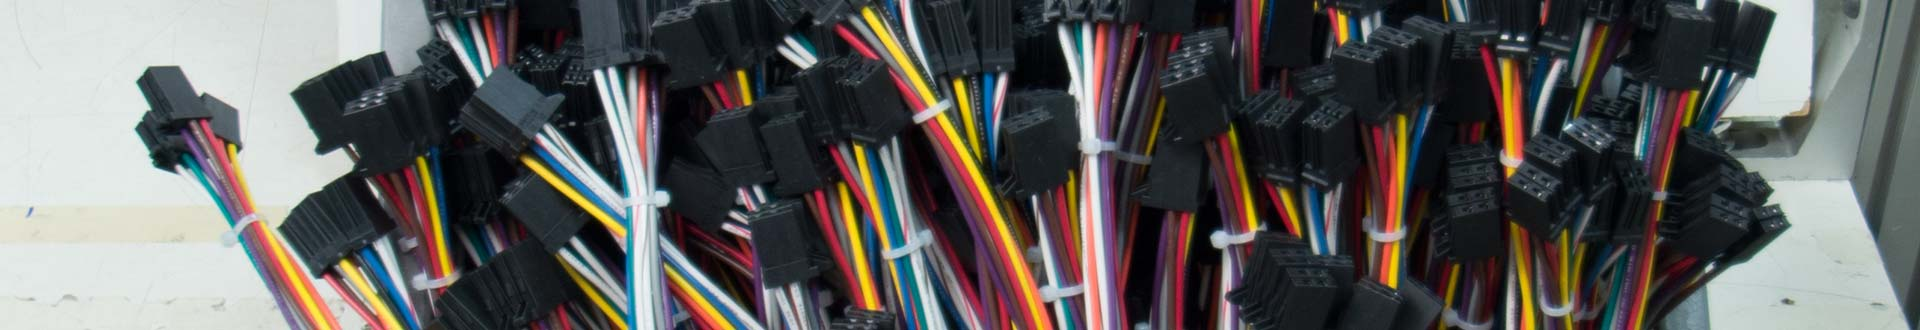 Contract Manufacturing Services for Cable, Wire & Electro-Mech